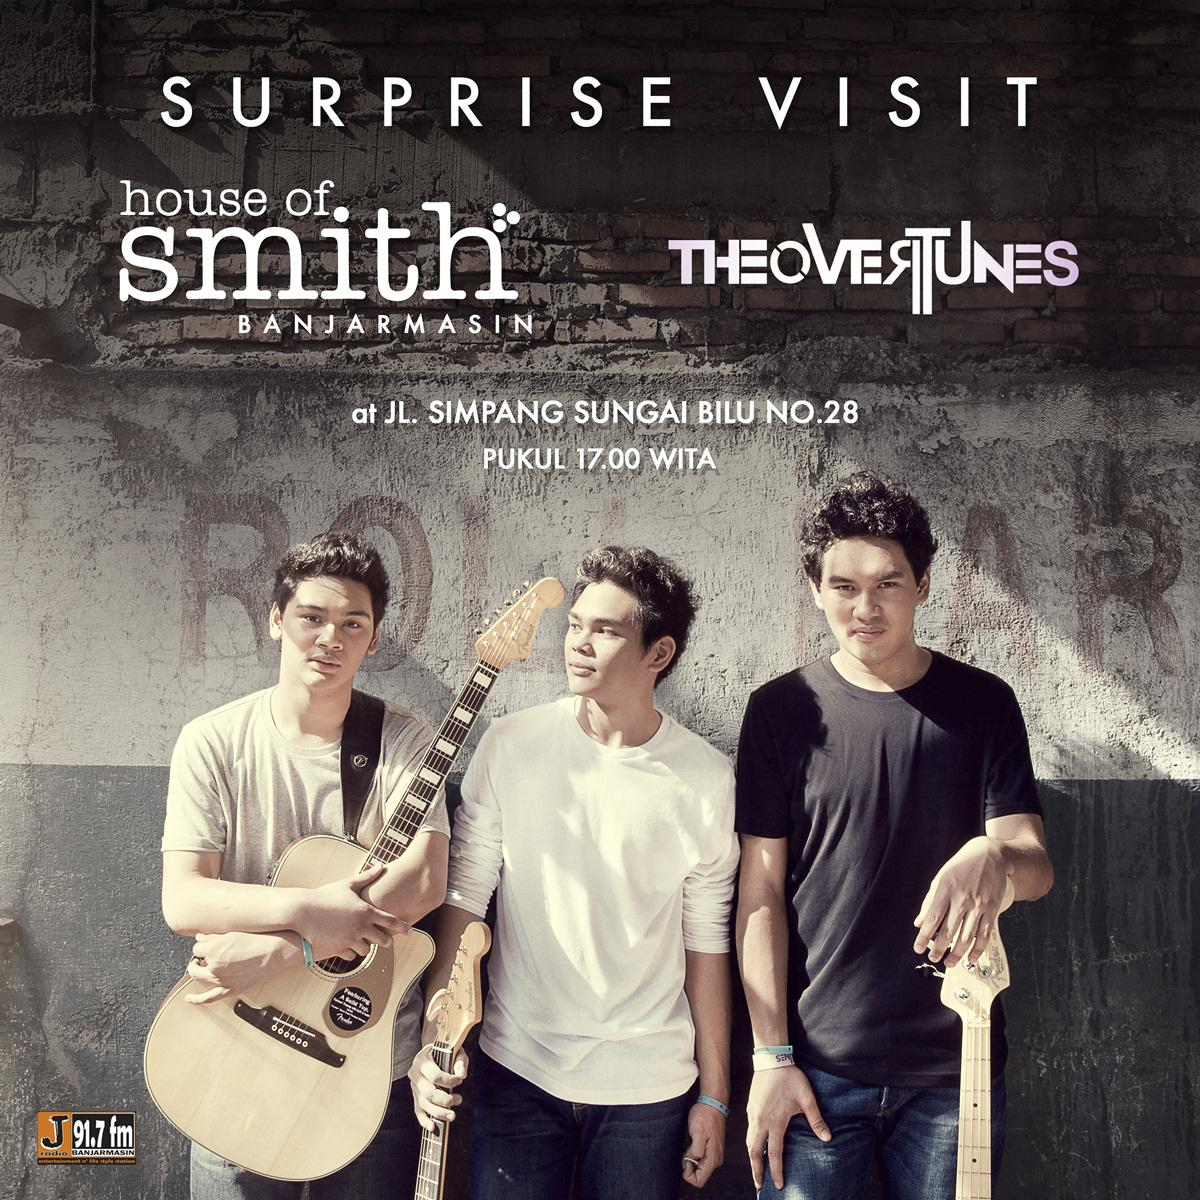 psst... @TheOvertunes mau surprise visit ke House of smith nih.. check this out http://t.co/gWXgAGvchQ